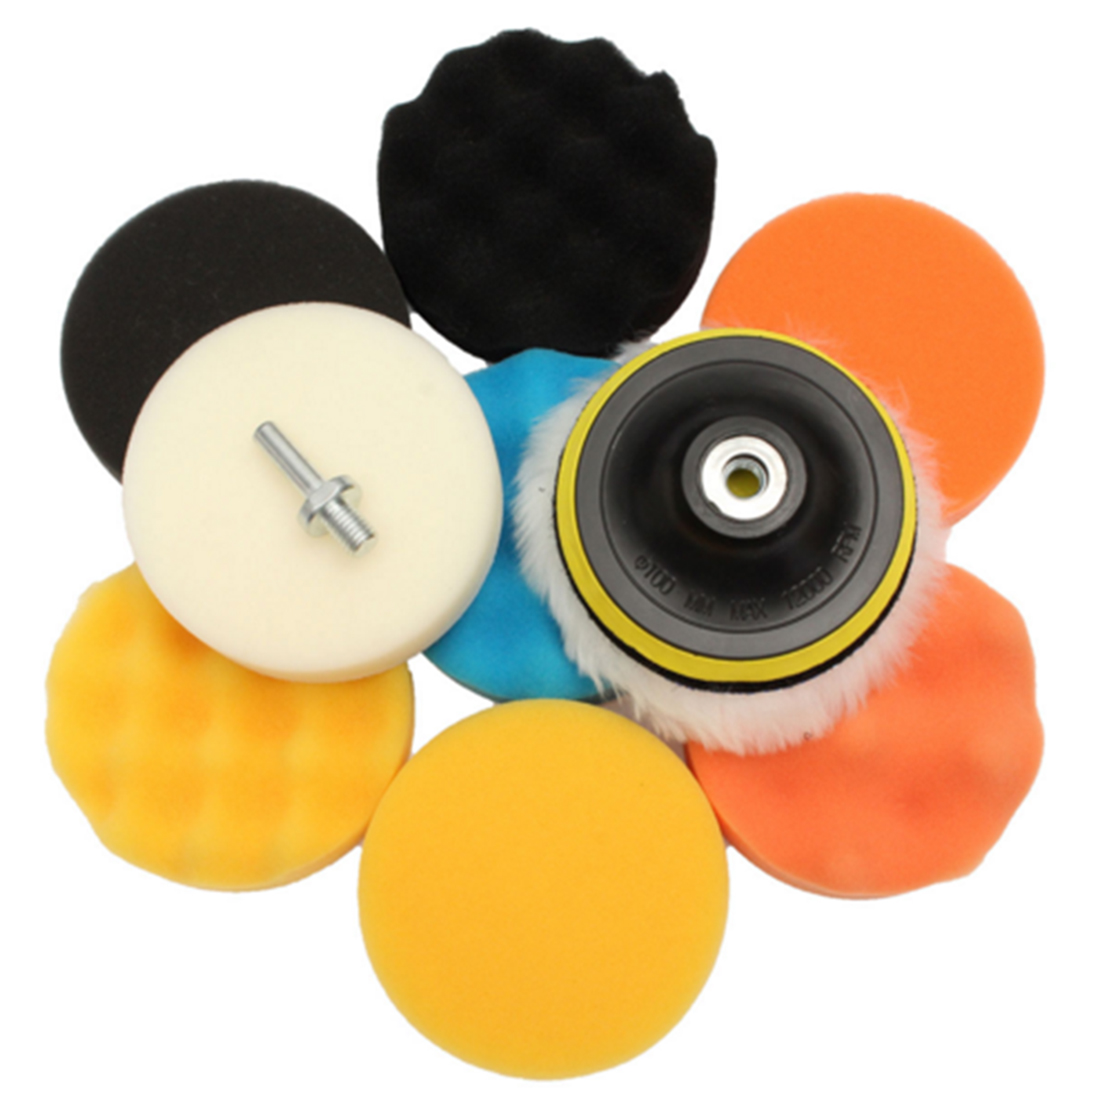 New 3 Inch Car Polishing Disc 80MM Self-adhesive Polishing Waxing 10 Piece Set Wool Wheel Wave Flat Sponge Wheel Beauty Waxing